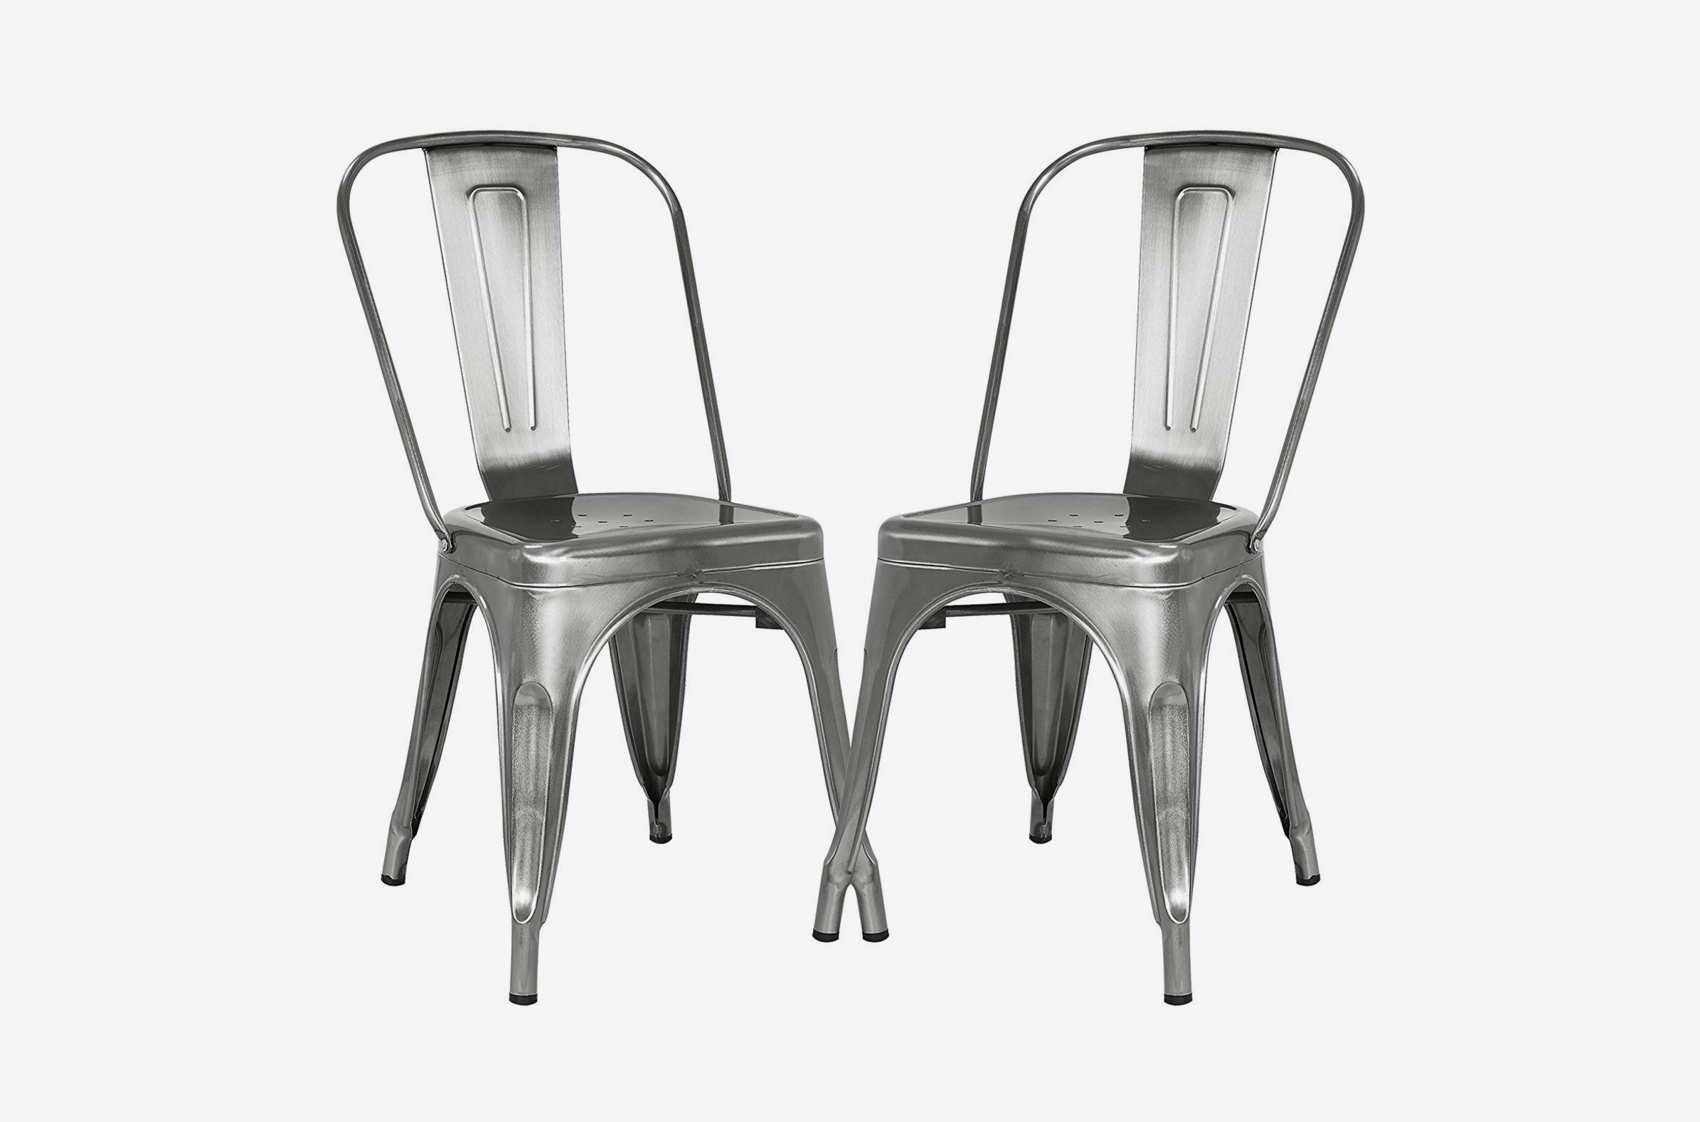 Sensational Poly And Bark Trattoria Side Chair In Polished Gunmetal Set Bralicious Painted Fabric Chair Ideas Braliciousco